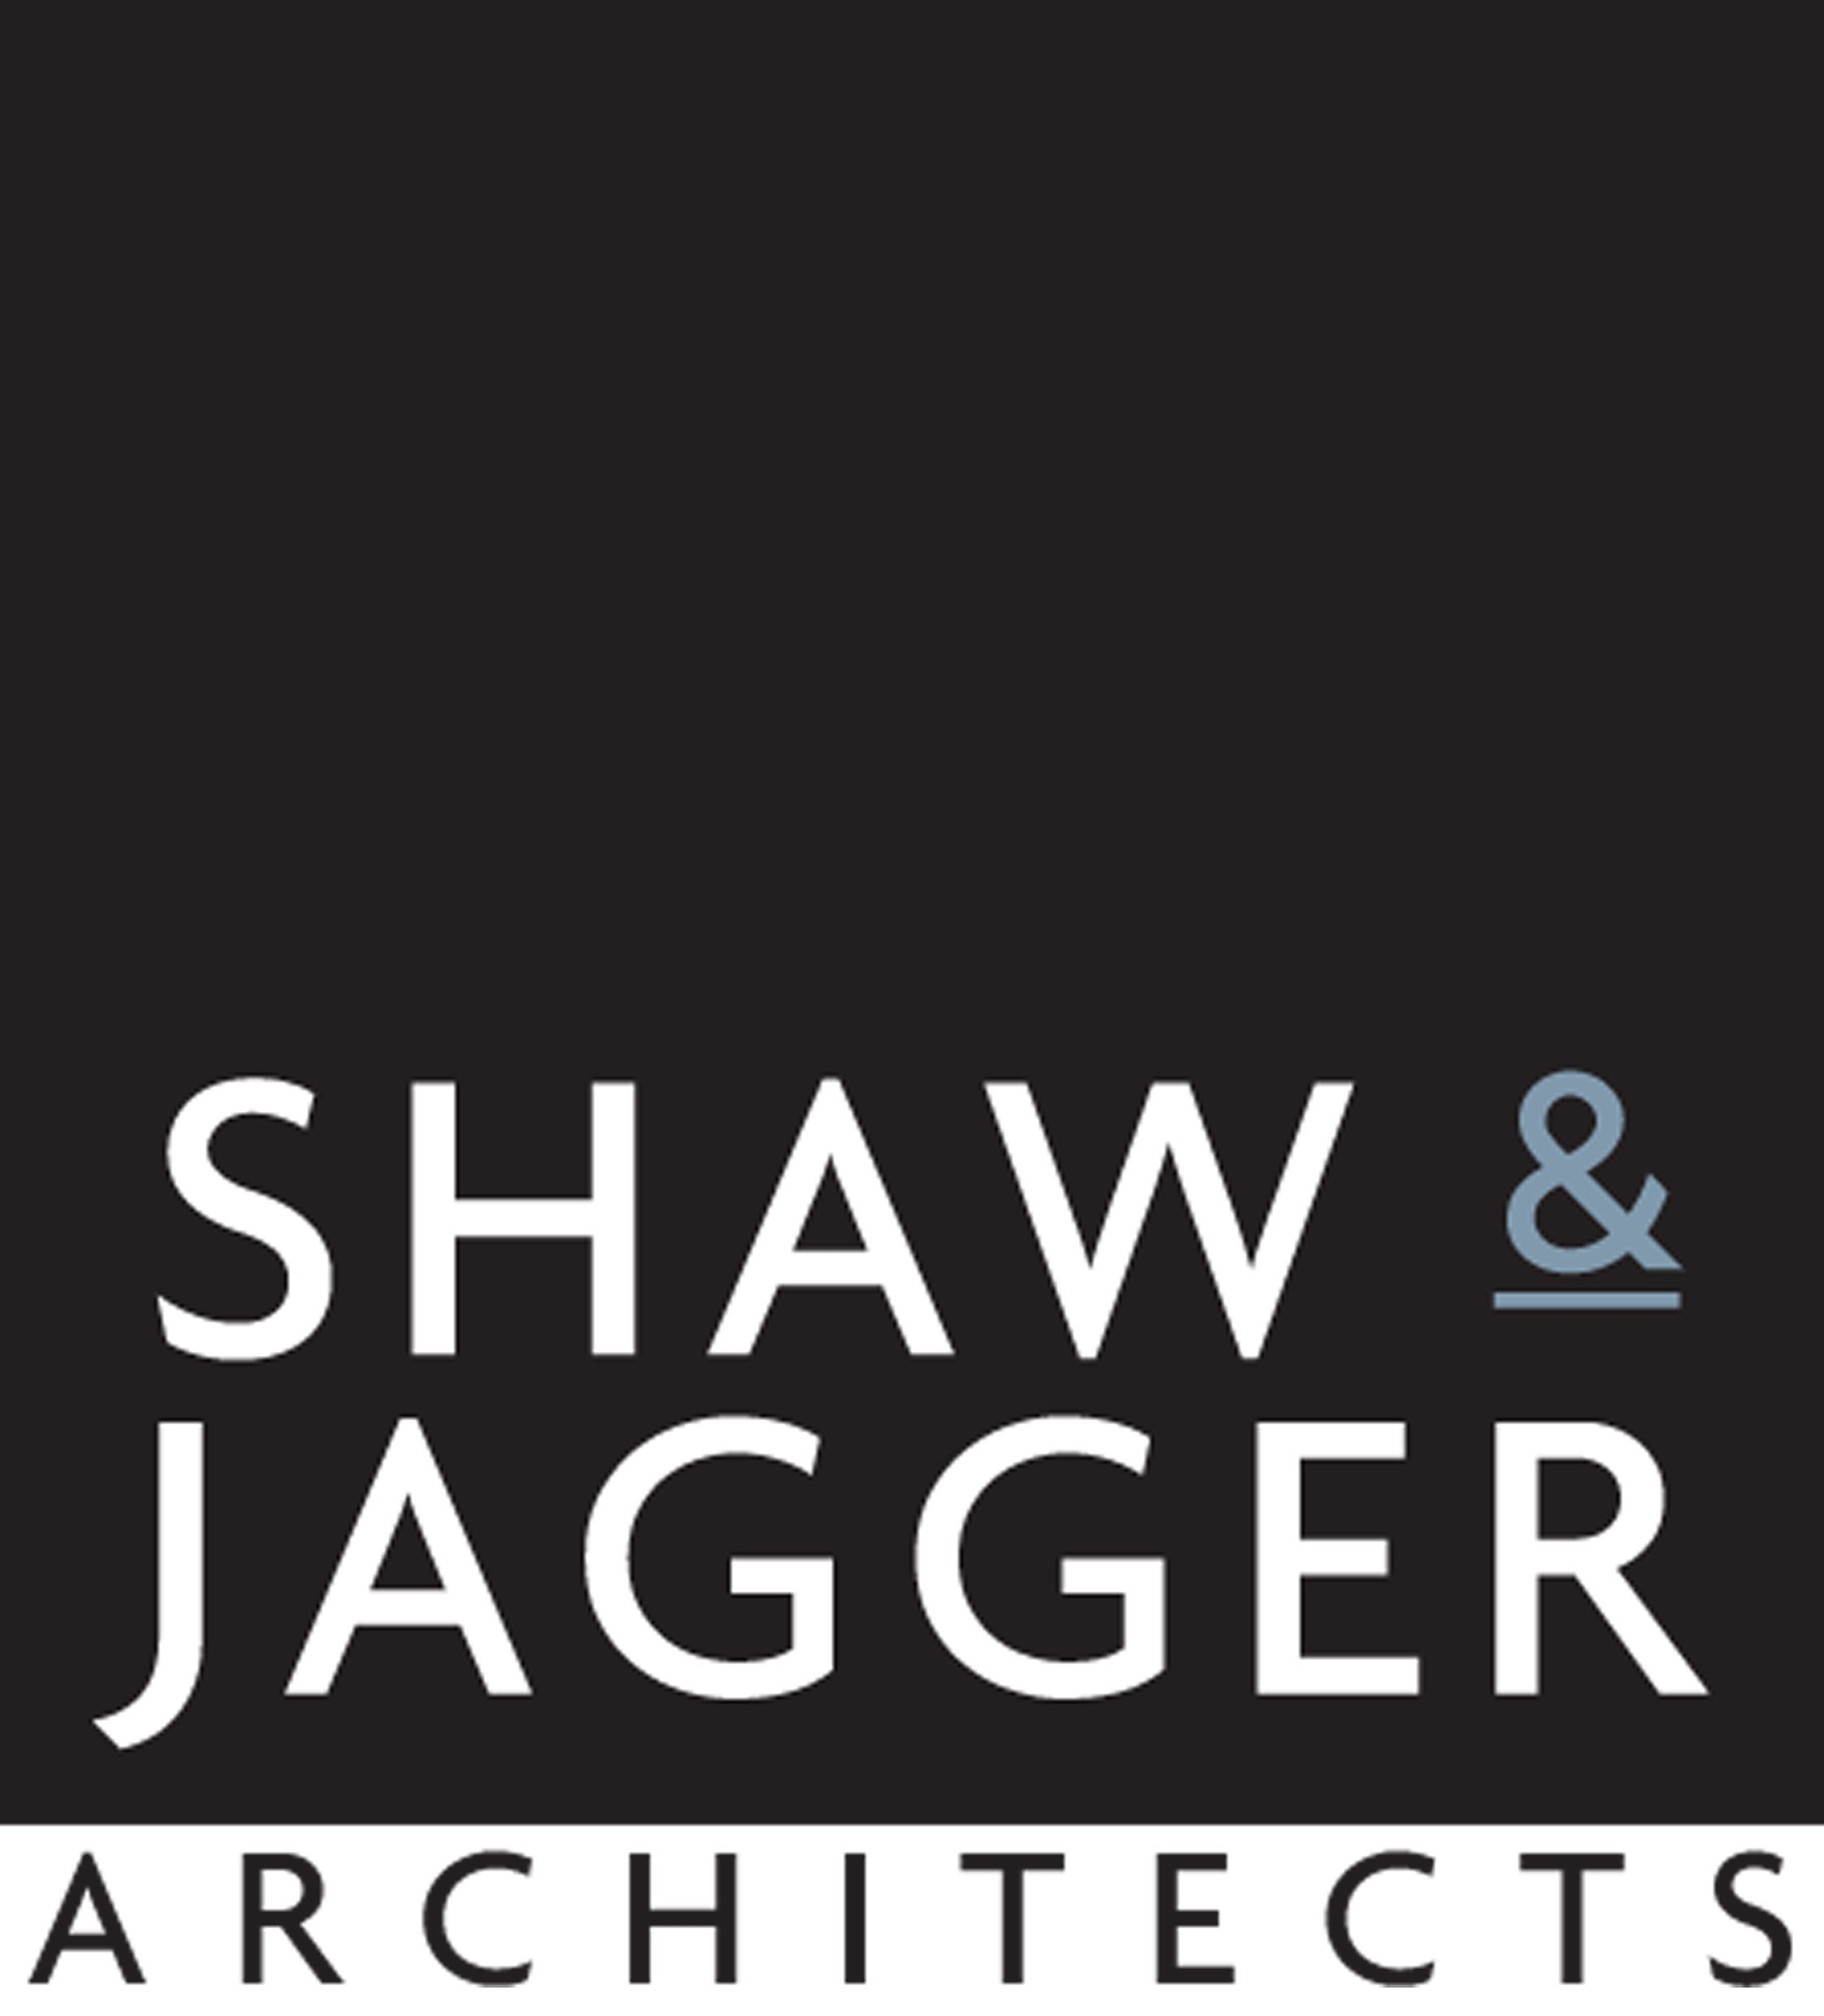 Shaw And Jagger Architects